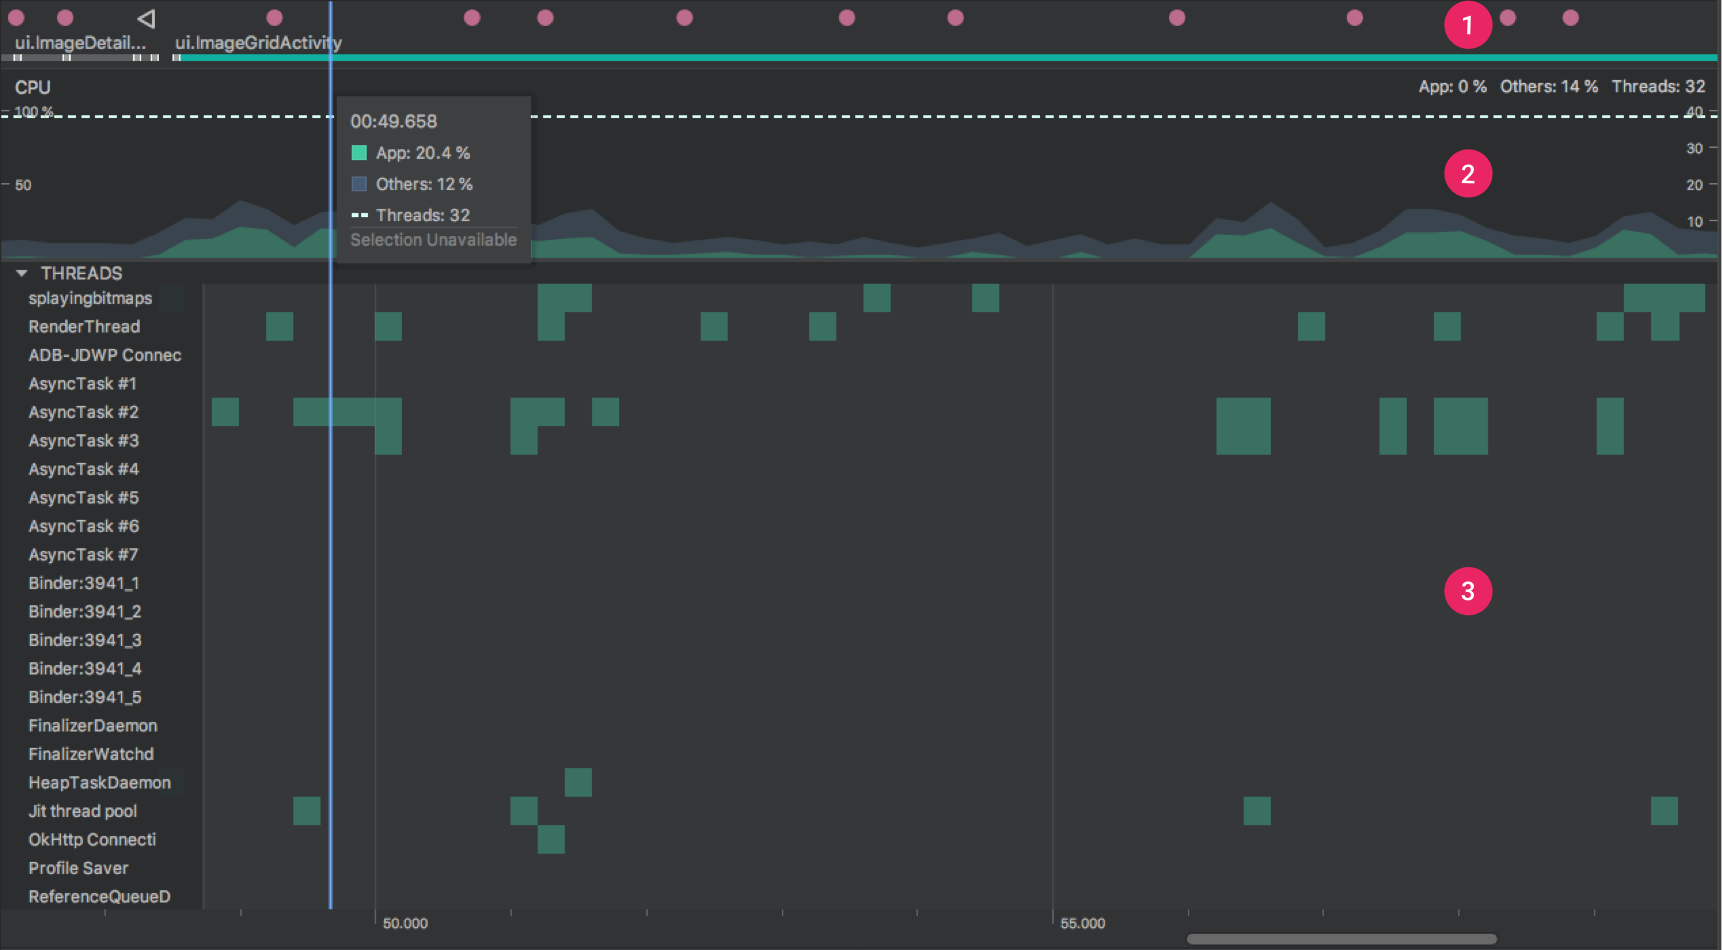 Inspect CPU activity with CPU Profiler | Android Developers